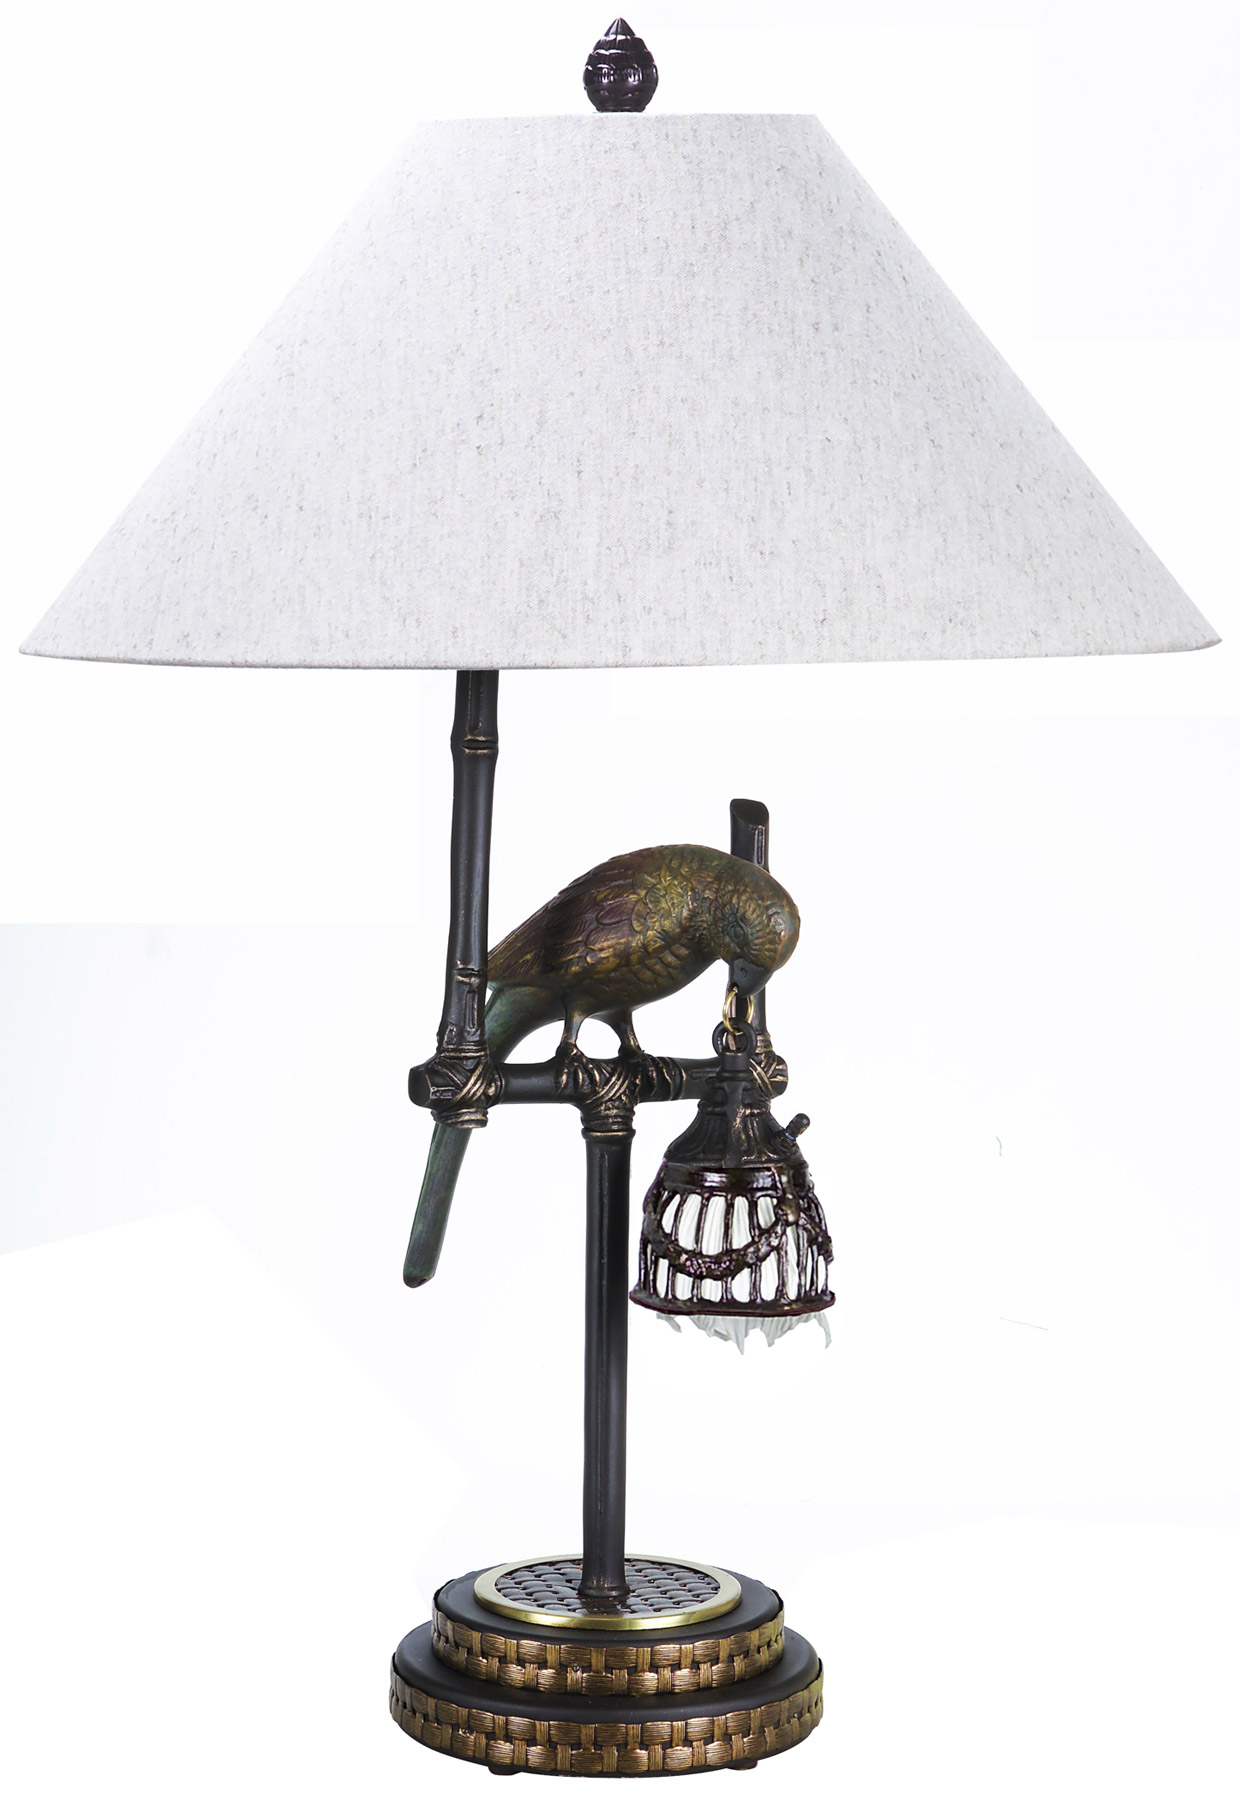 Frederick Cooper 652612 Polly by Night Table Lamp